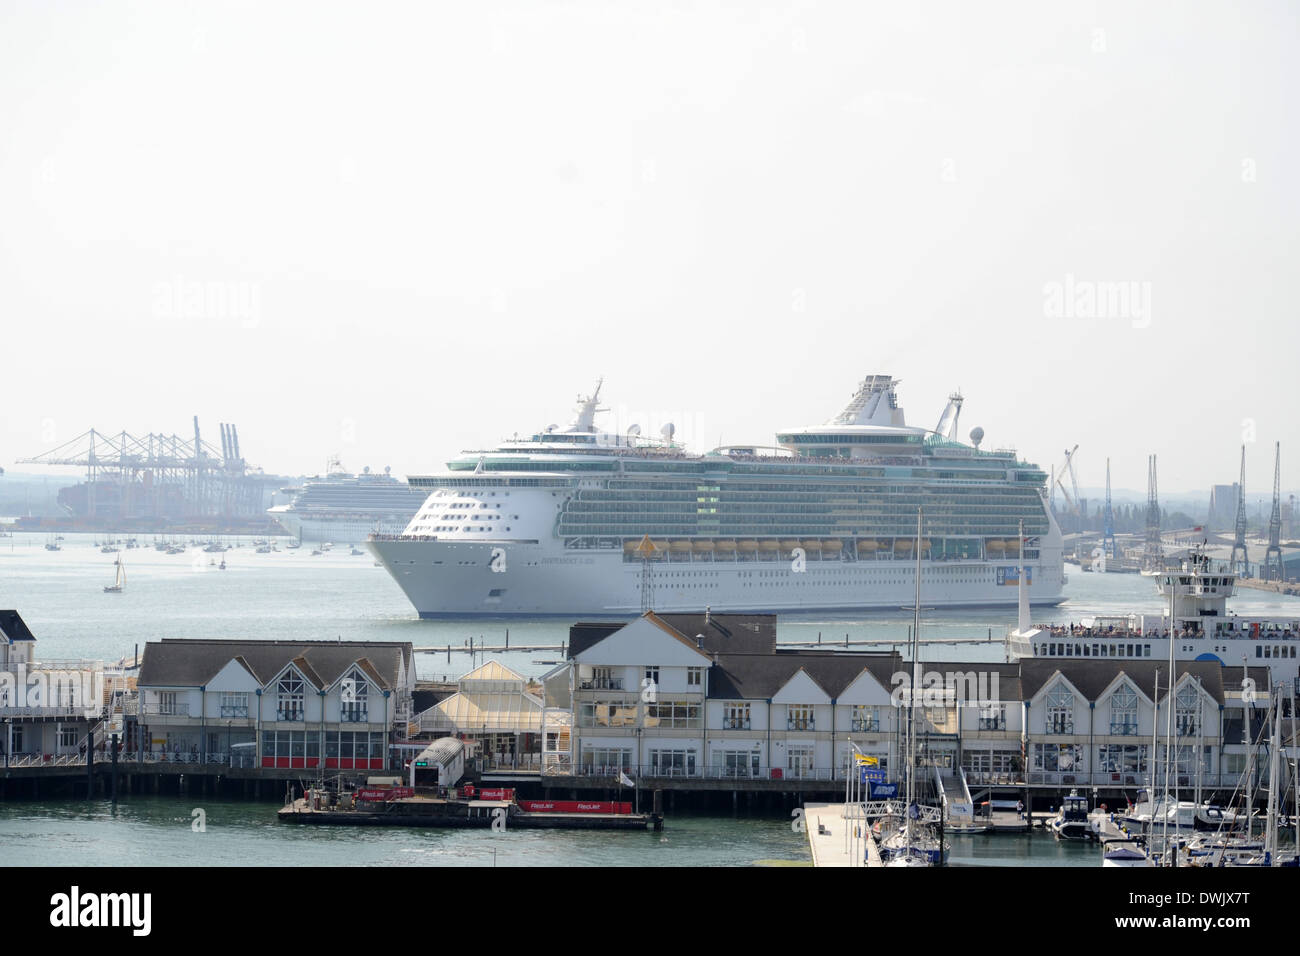 Royal Caribbean's Independence of the Seas cruise ship at sea. - Stock Image